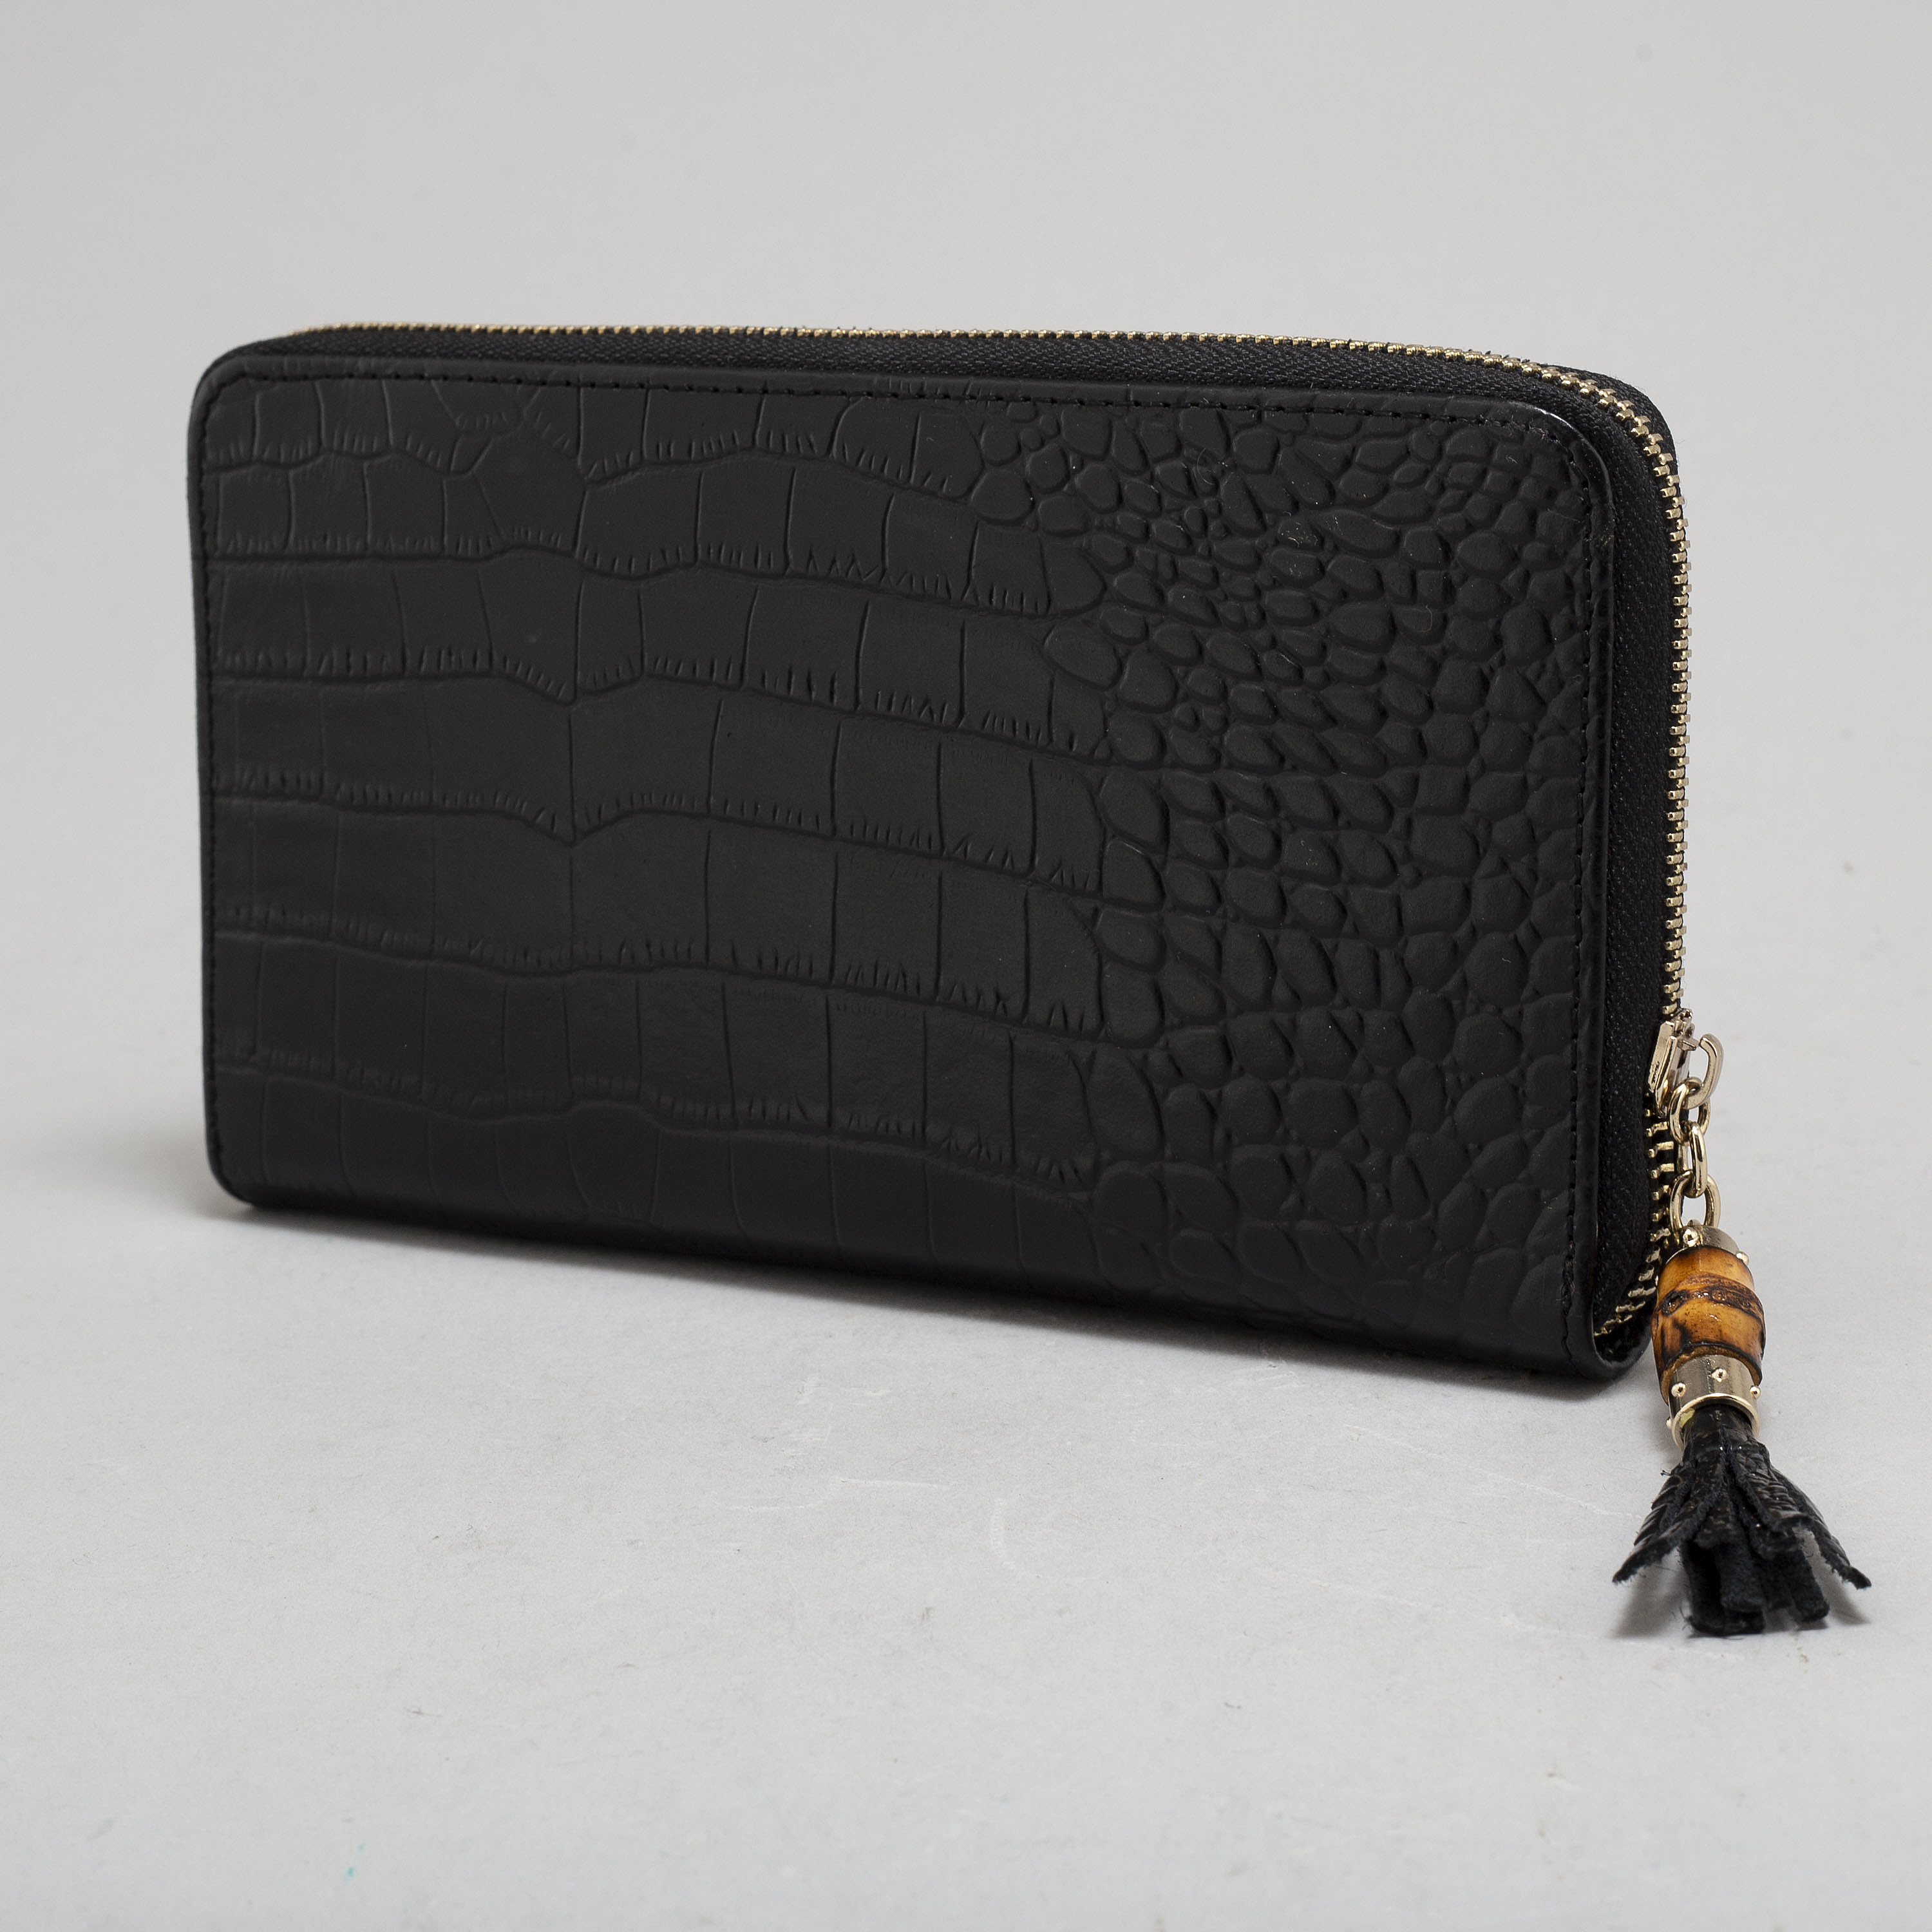 a98614aa70e7 GUCCI, a leather wallet. - Bukowskis